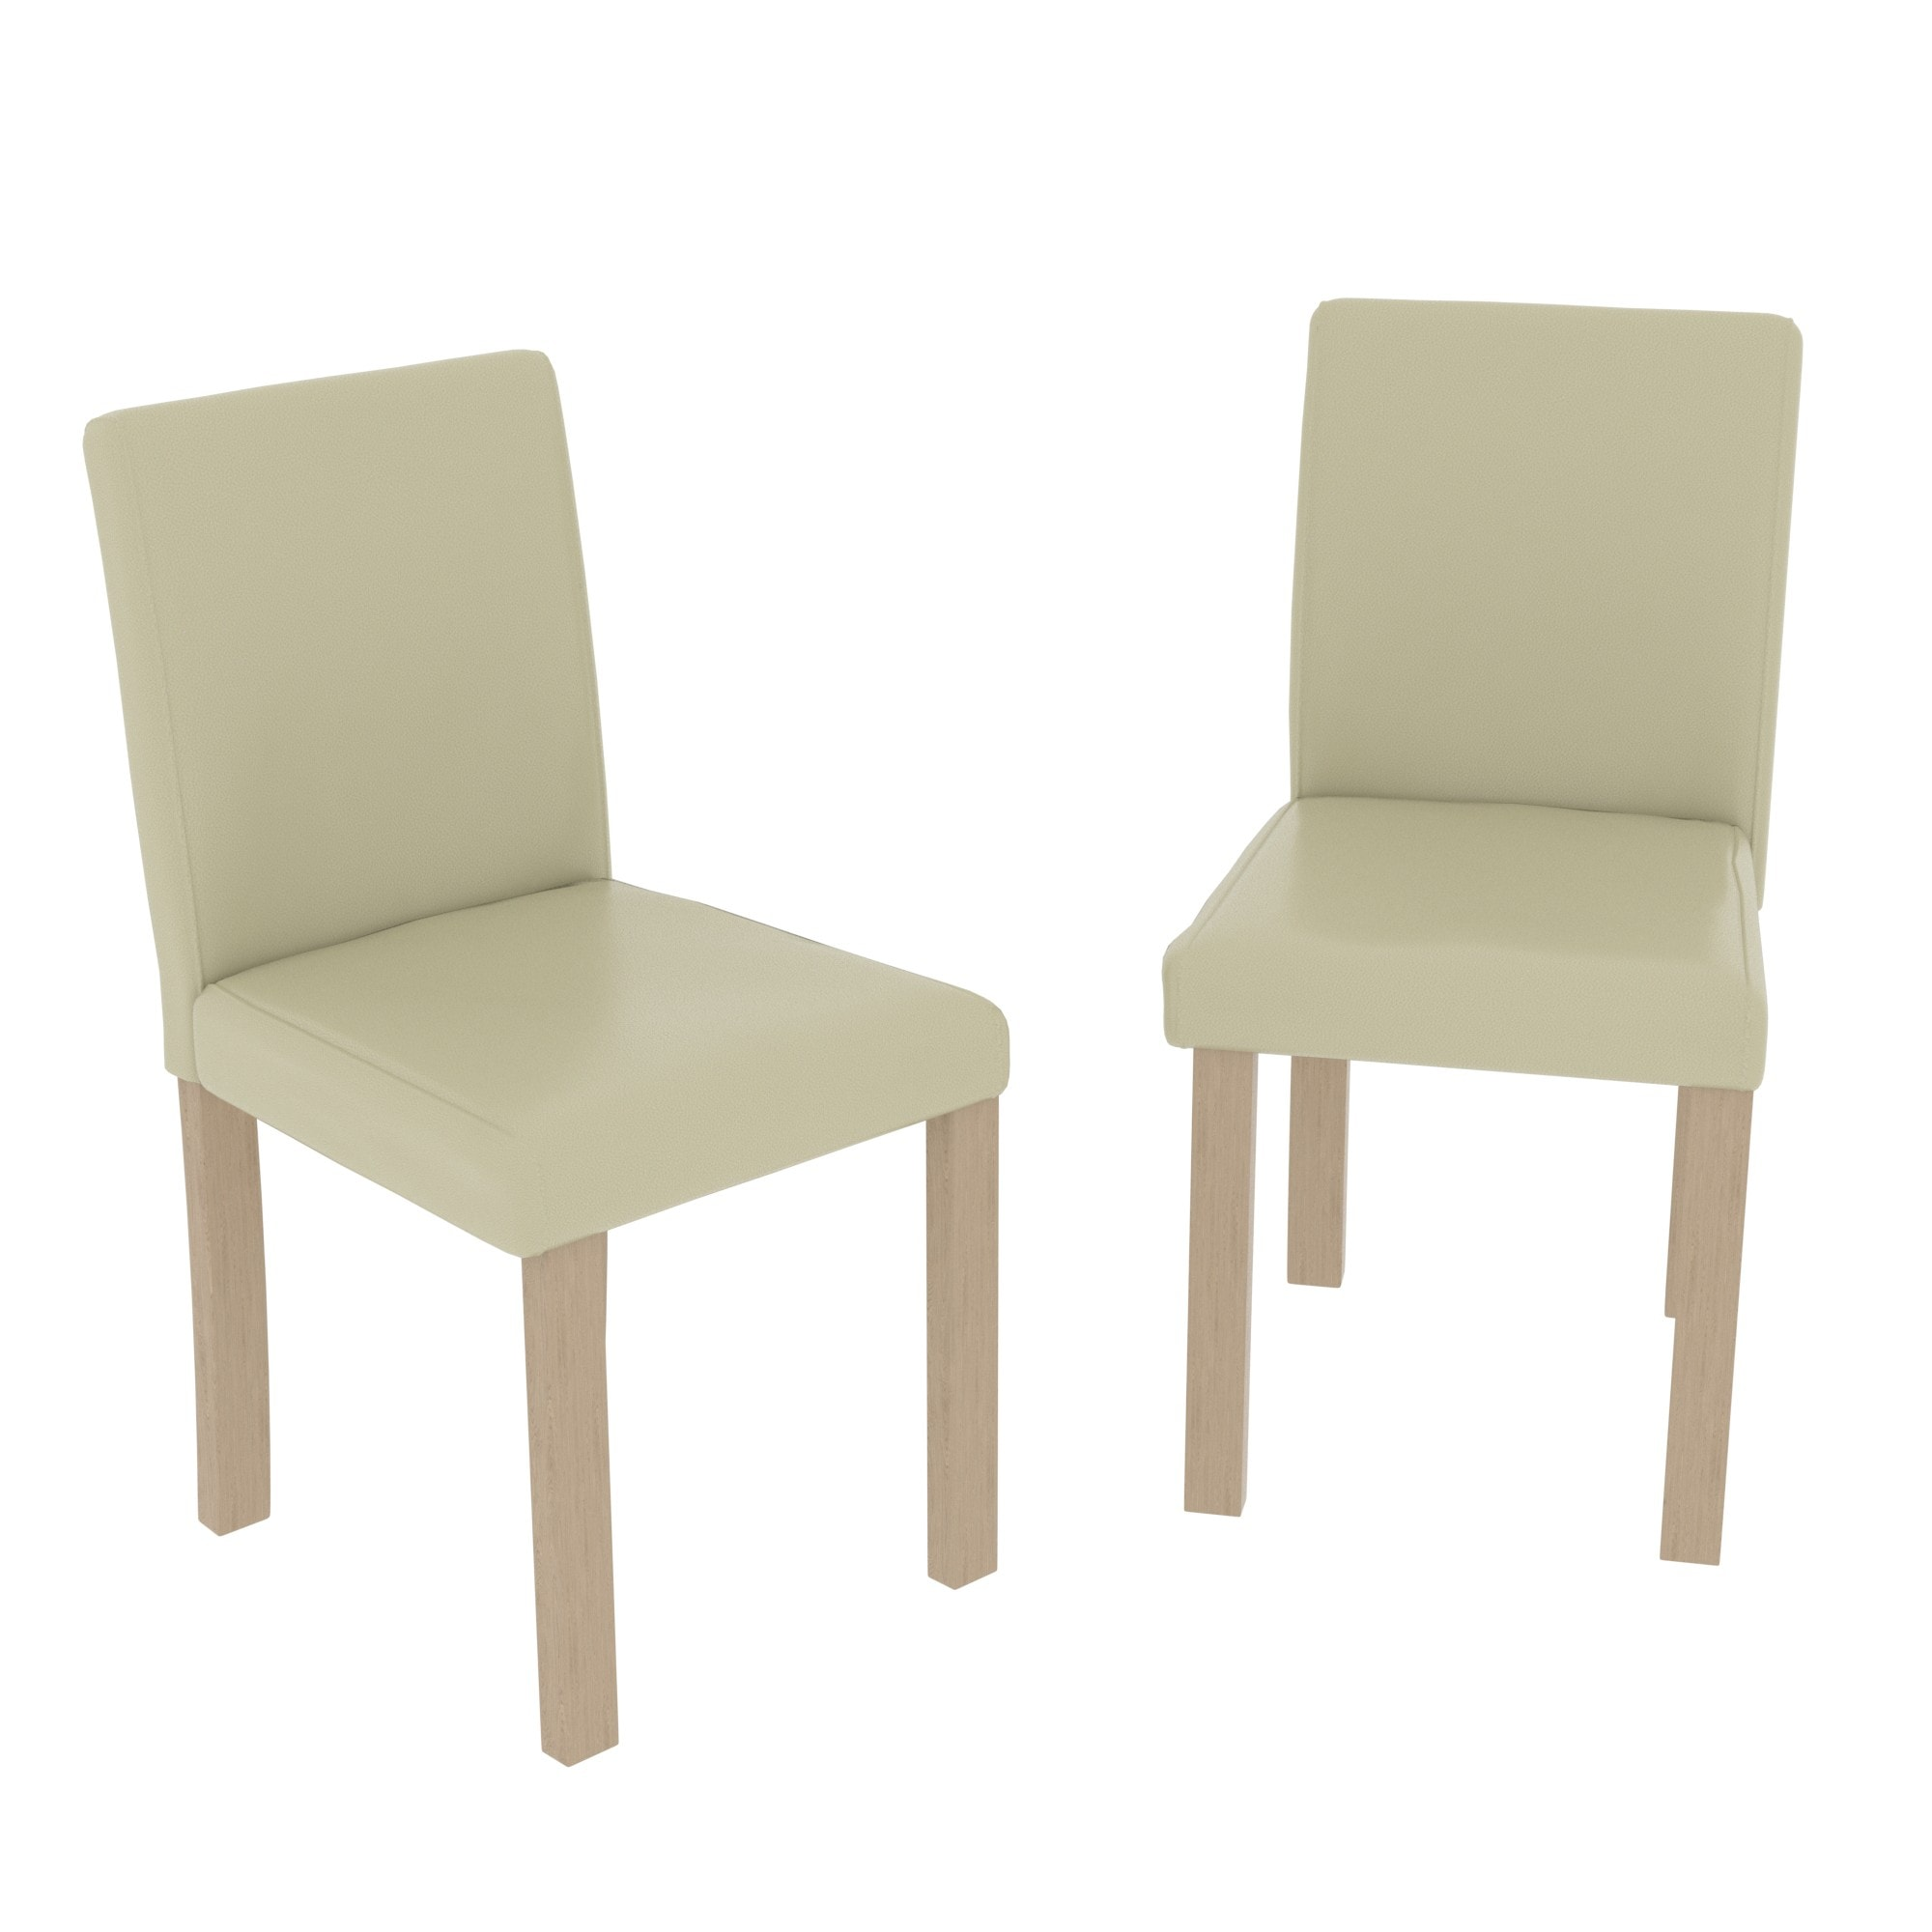 Fantastic Canterbury Set Of 2 Dining Chairs Cream Oak Andrewgaddart Wooden Chair Designs For Living Room Andrewgaddartcom